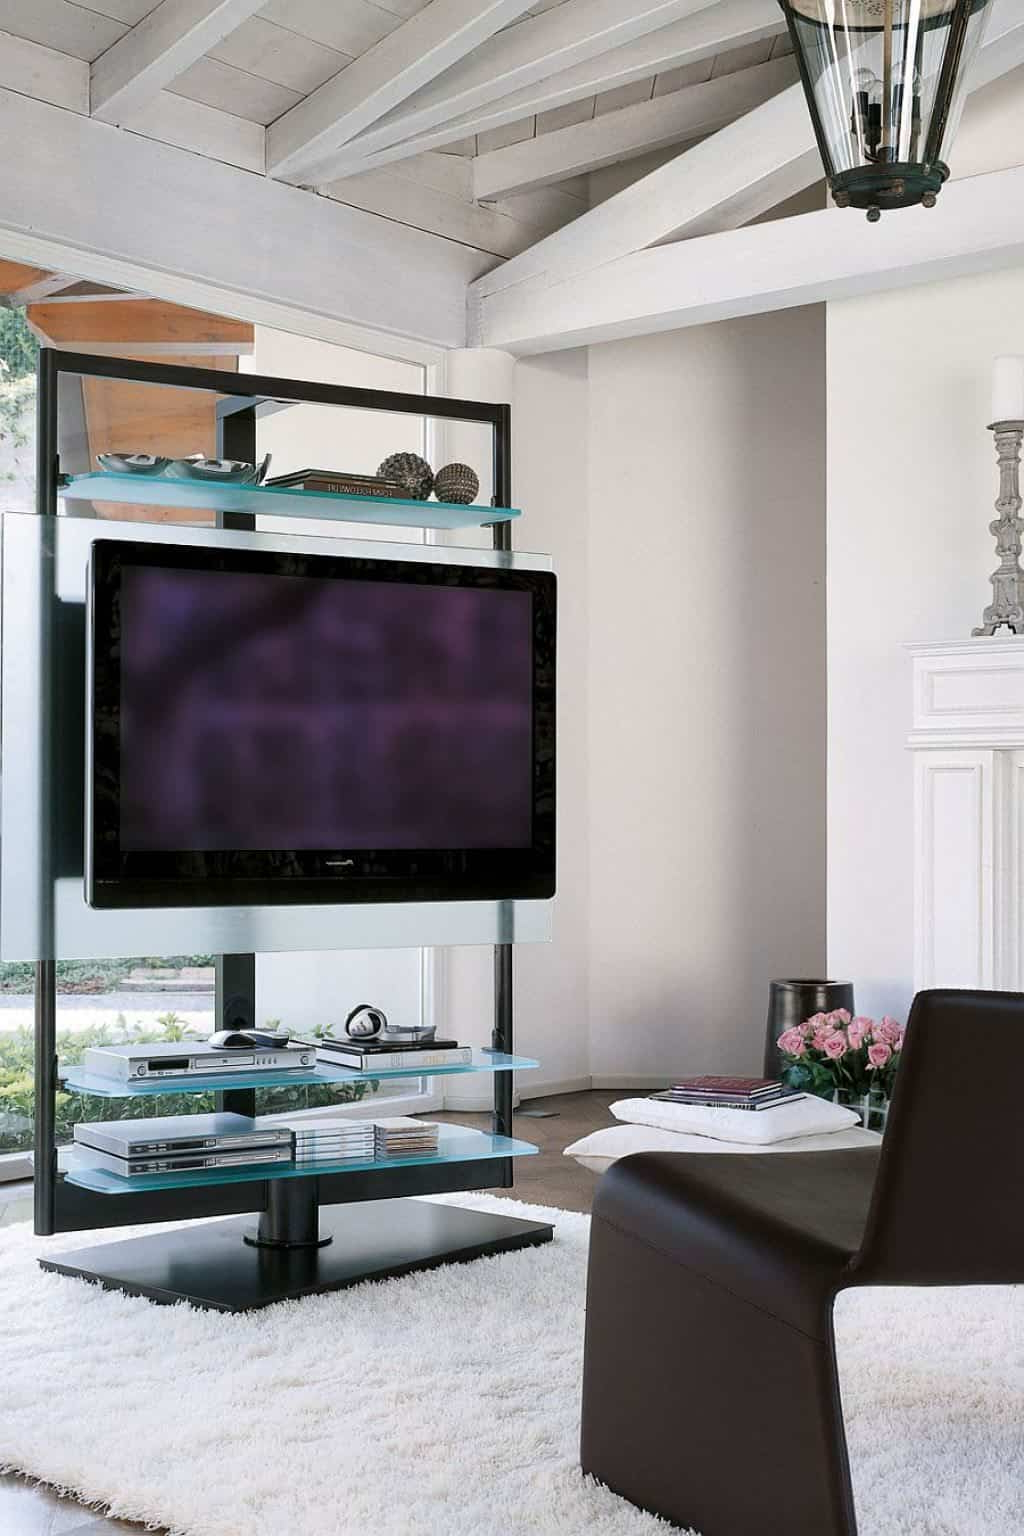 Freestanding Tv Stands Within Most Recent Amazing Freestanding Tv Stand And Glass Shelves – Useful And Stylish (View 5 of 20)